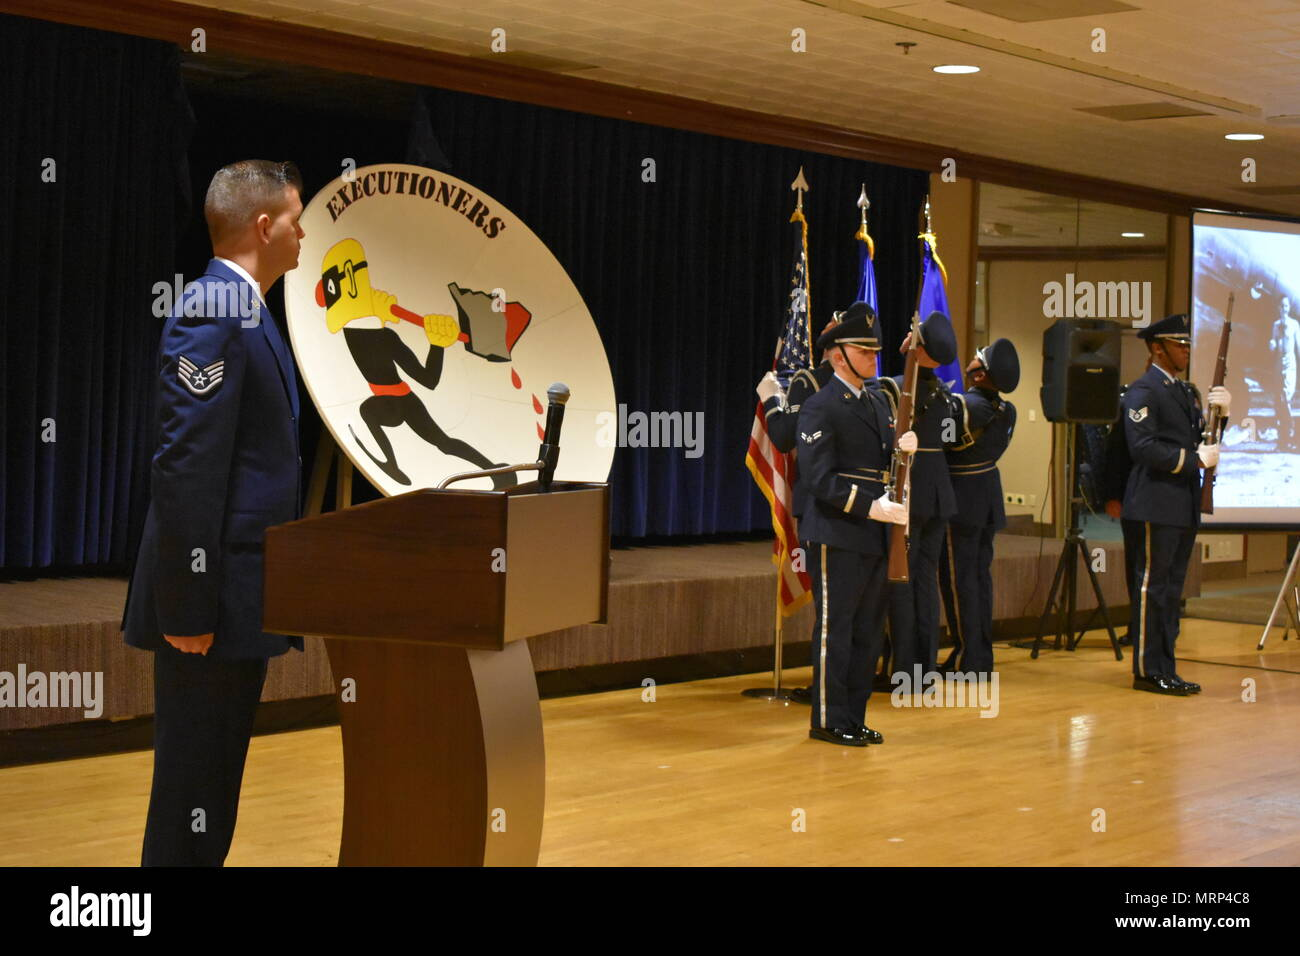 """25th Space Range Squadron collectively celebrate the squadron's 100th birthday during the 25 SRS Centennial Dinner Banquet at Peterson Air Force Base, Colorado, Wednesday, June 21, 2017. The 25 SRS extended invitations to any and all """"Executioners"""" to celebrate this momentous milestone. (U.S. Air Force photo/2nd Lt. Scarlett Rodriguez) Stock Photo"""